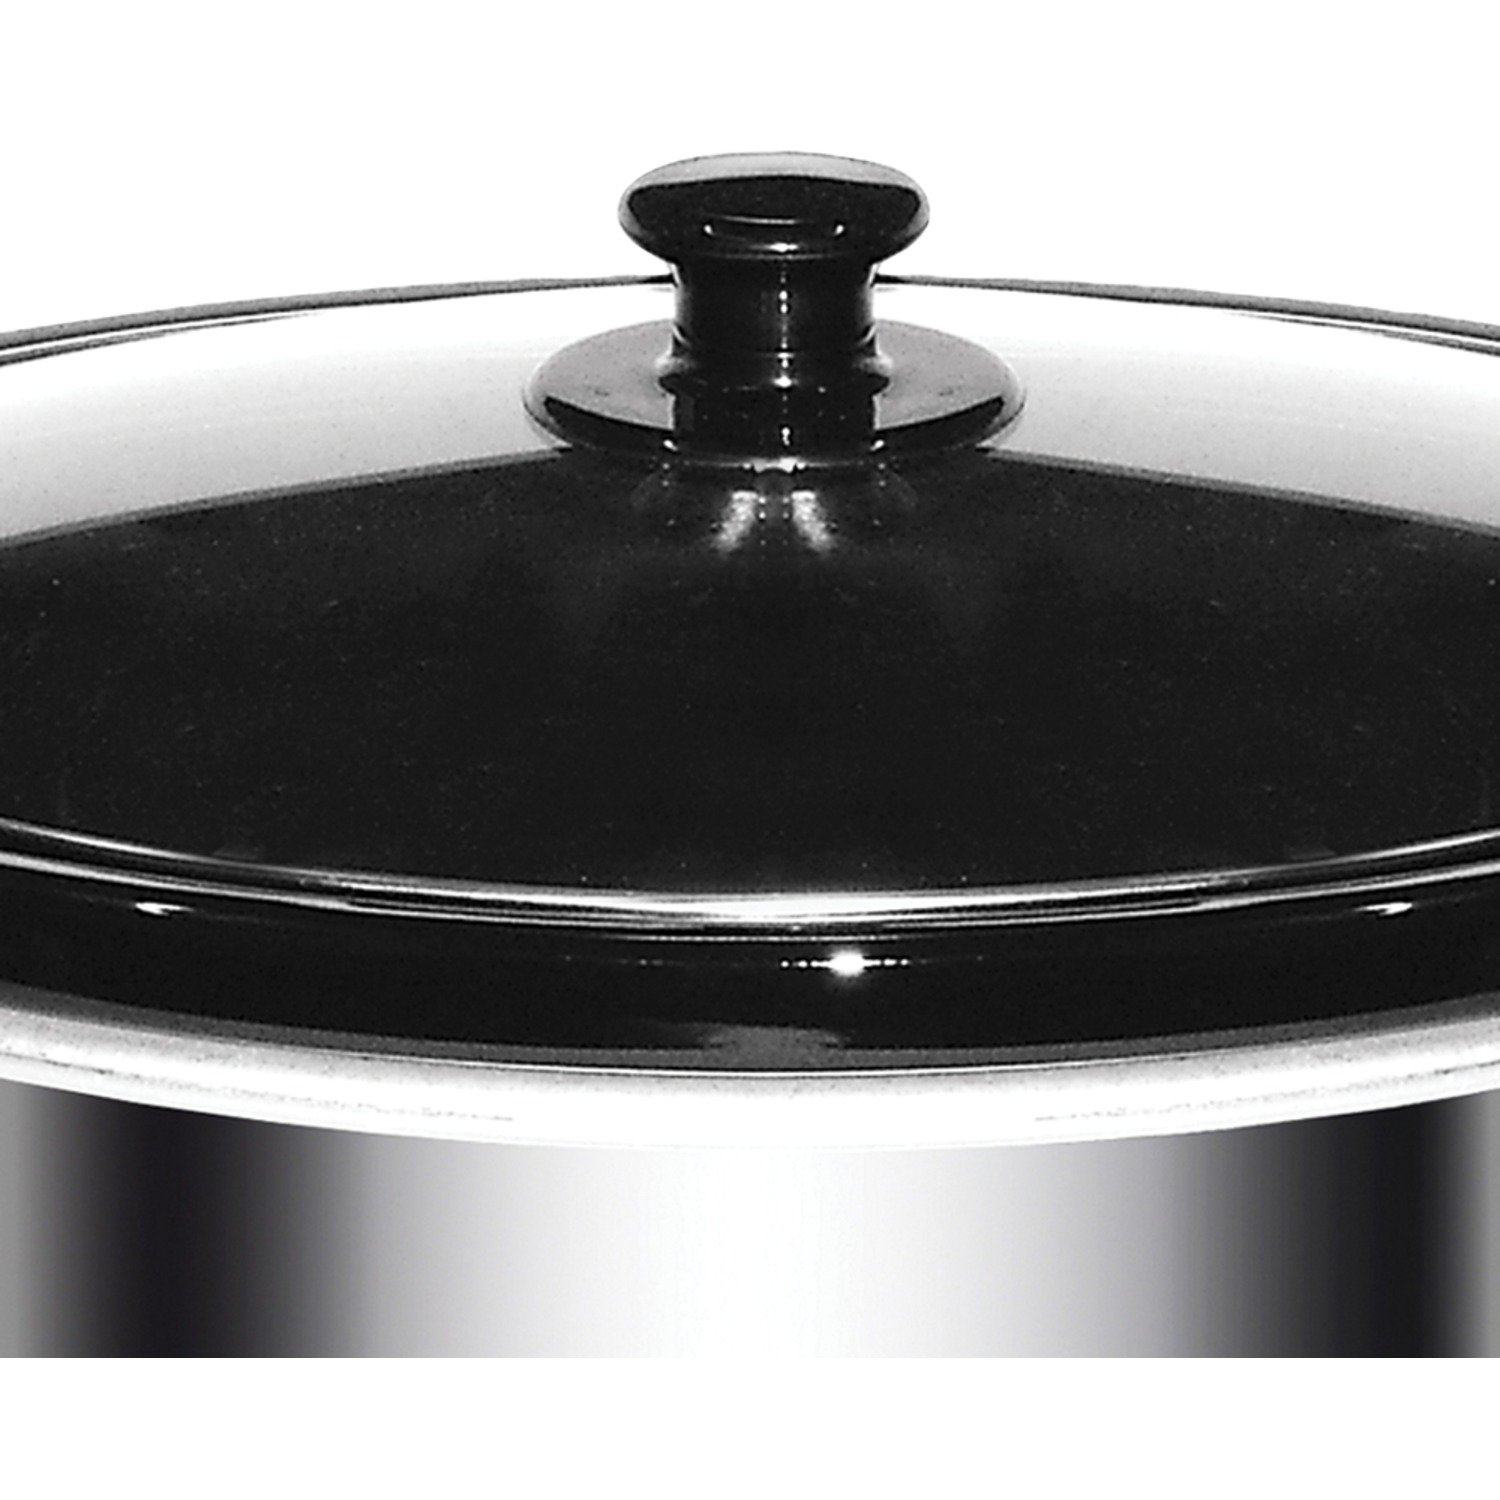 Brentwood SC-170S 8 Quart Slow Cooker, Stainless Steel